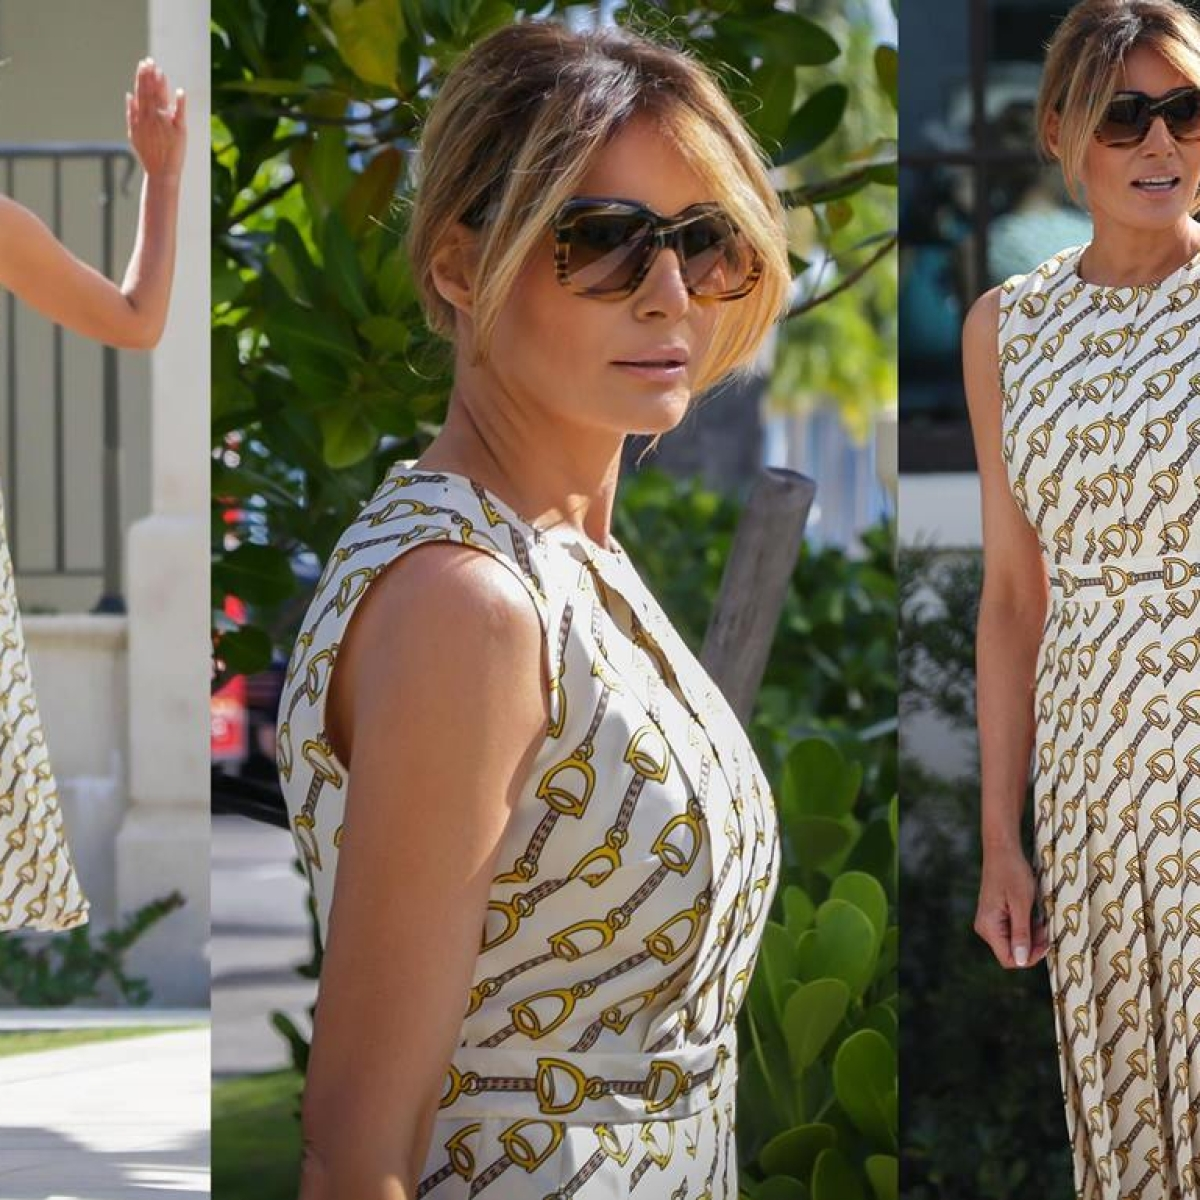 US Elections 2020: Melania Trump wears an ensemble worth Rs 16.5 lakh to cast her vote